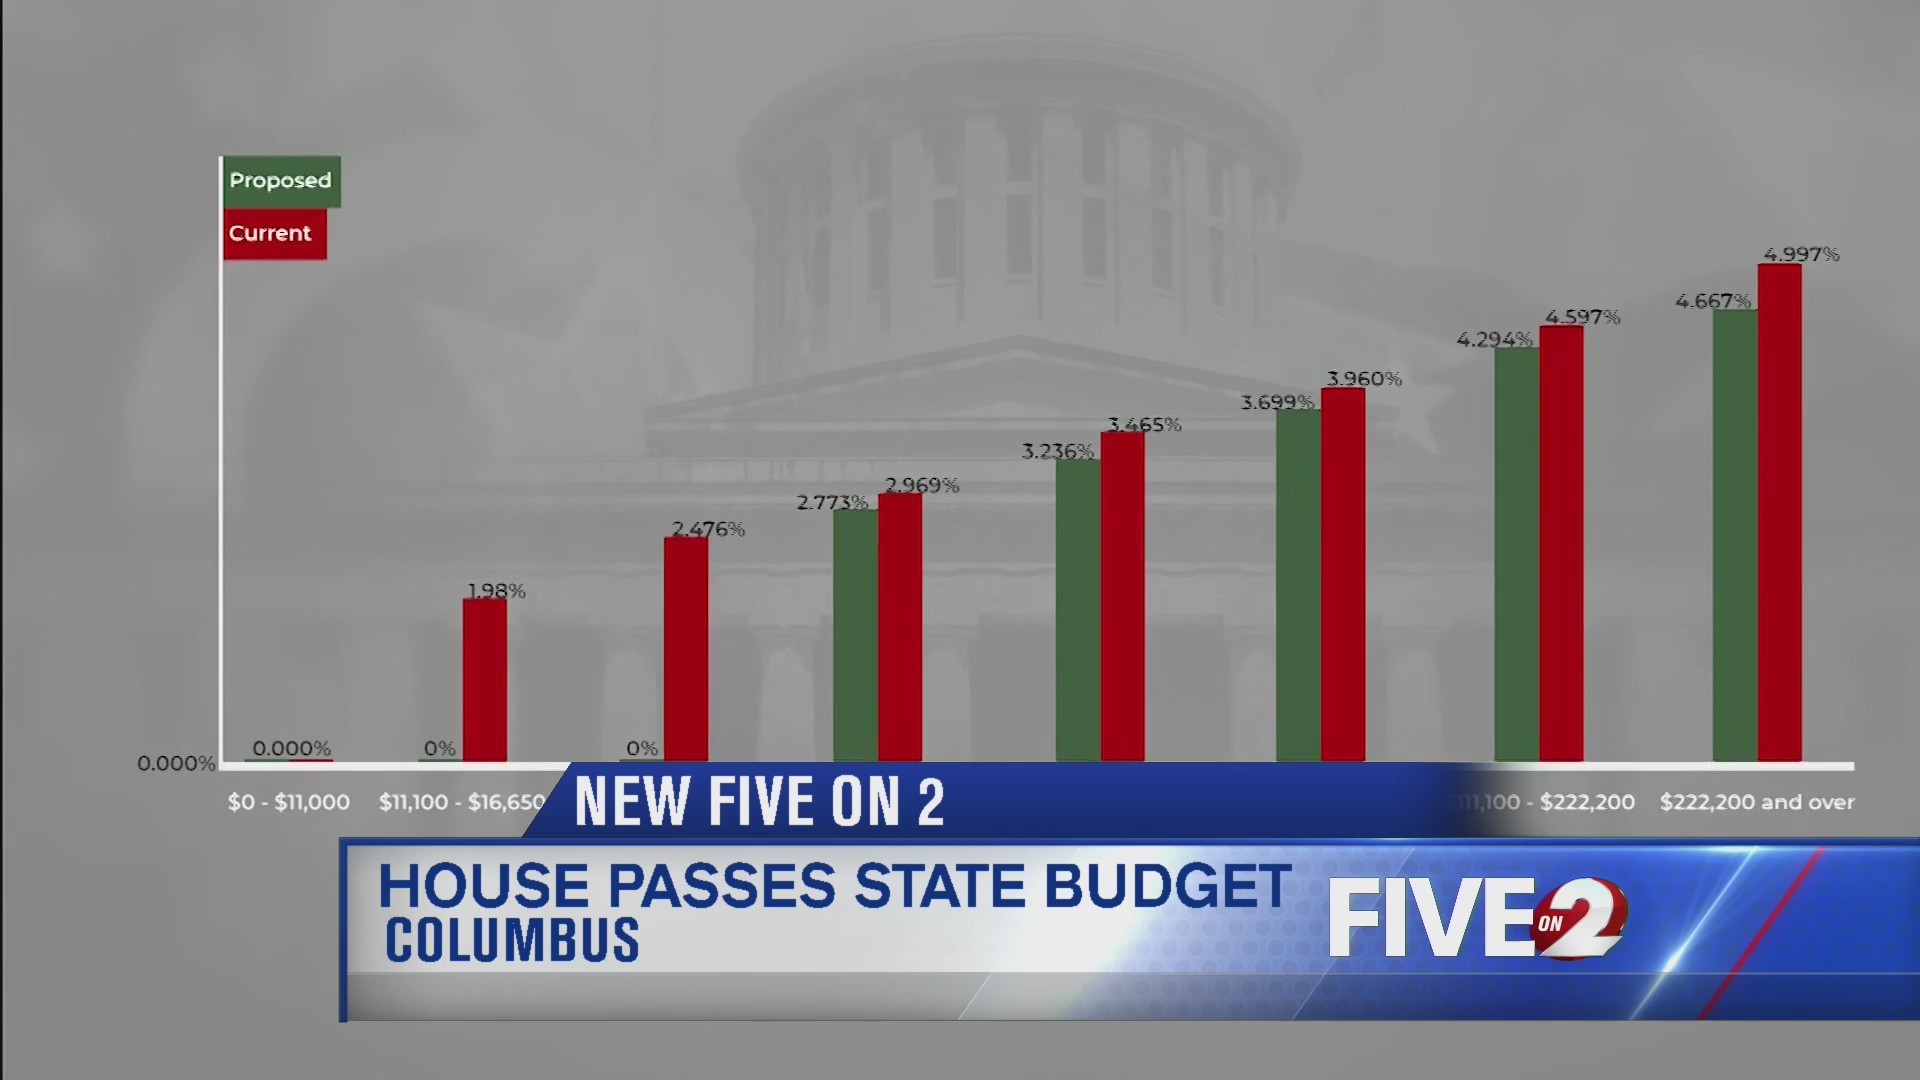 House passes state budget